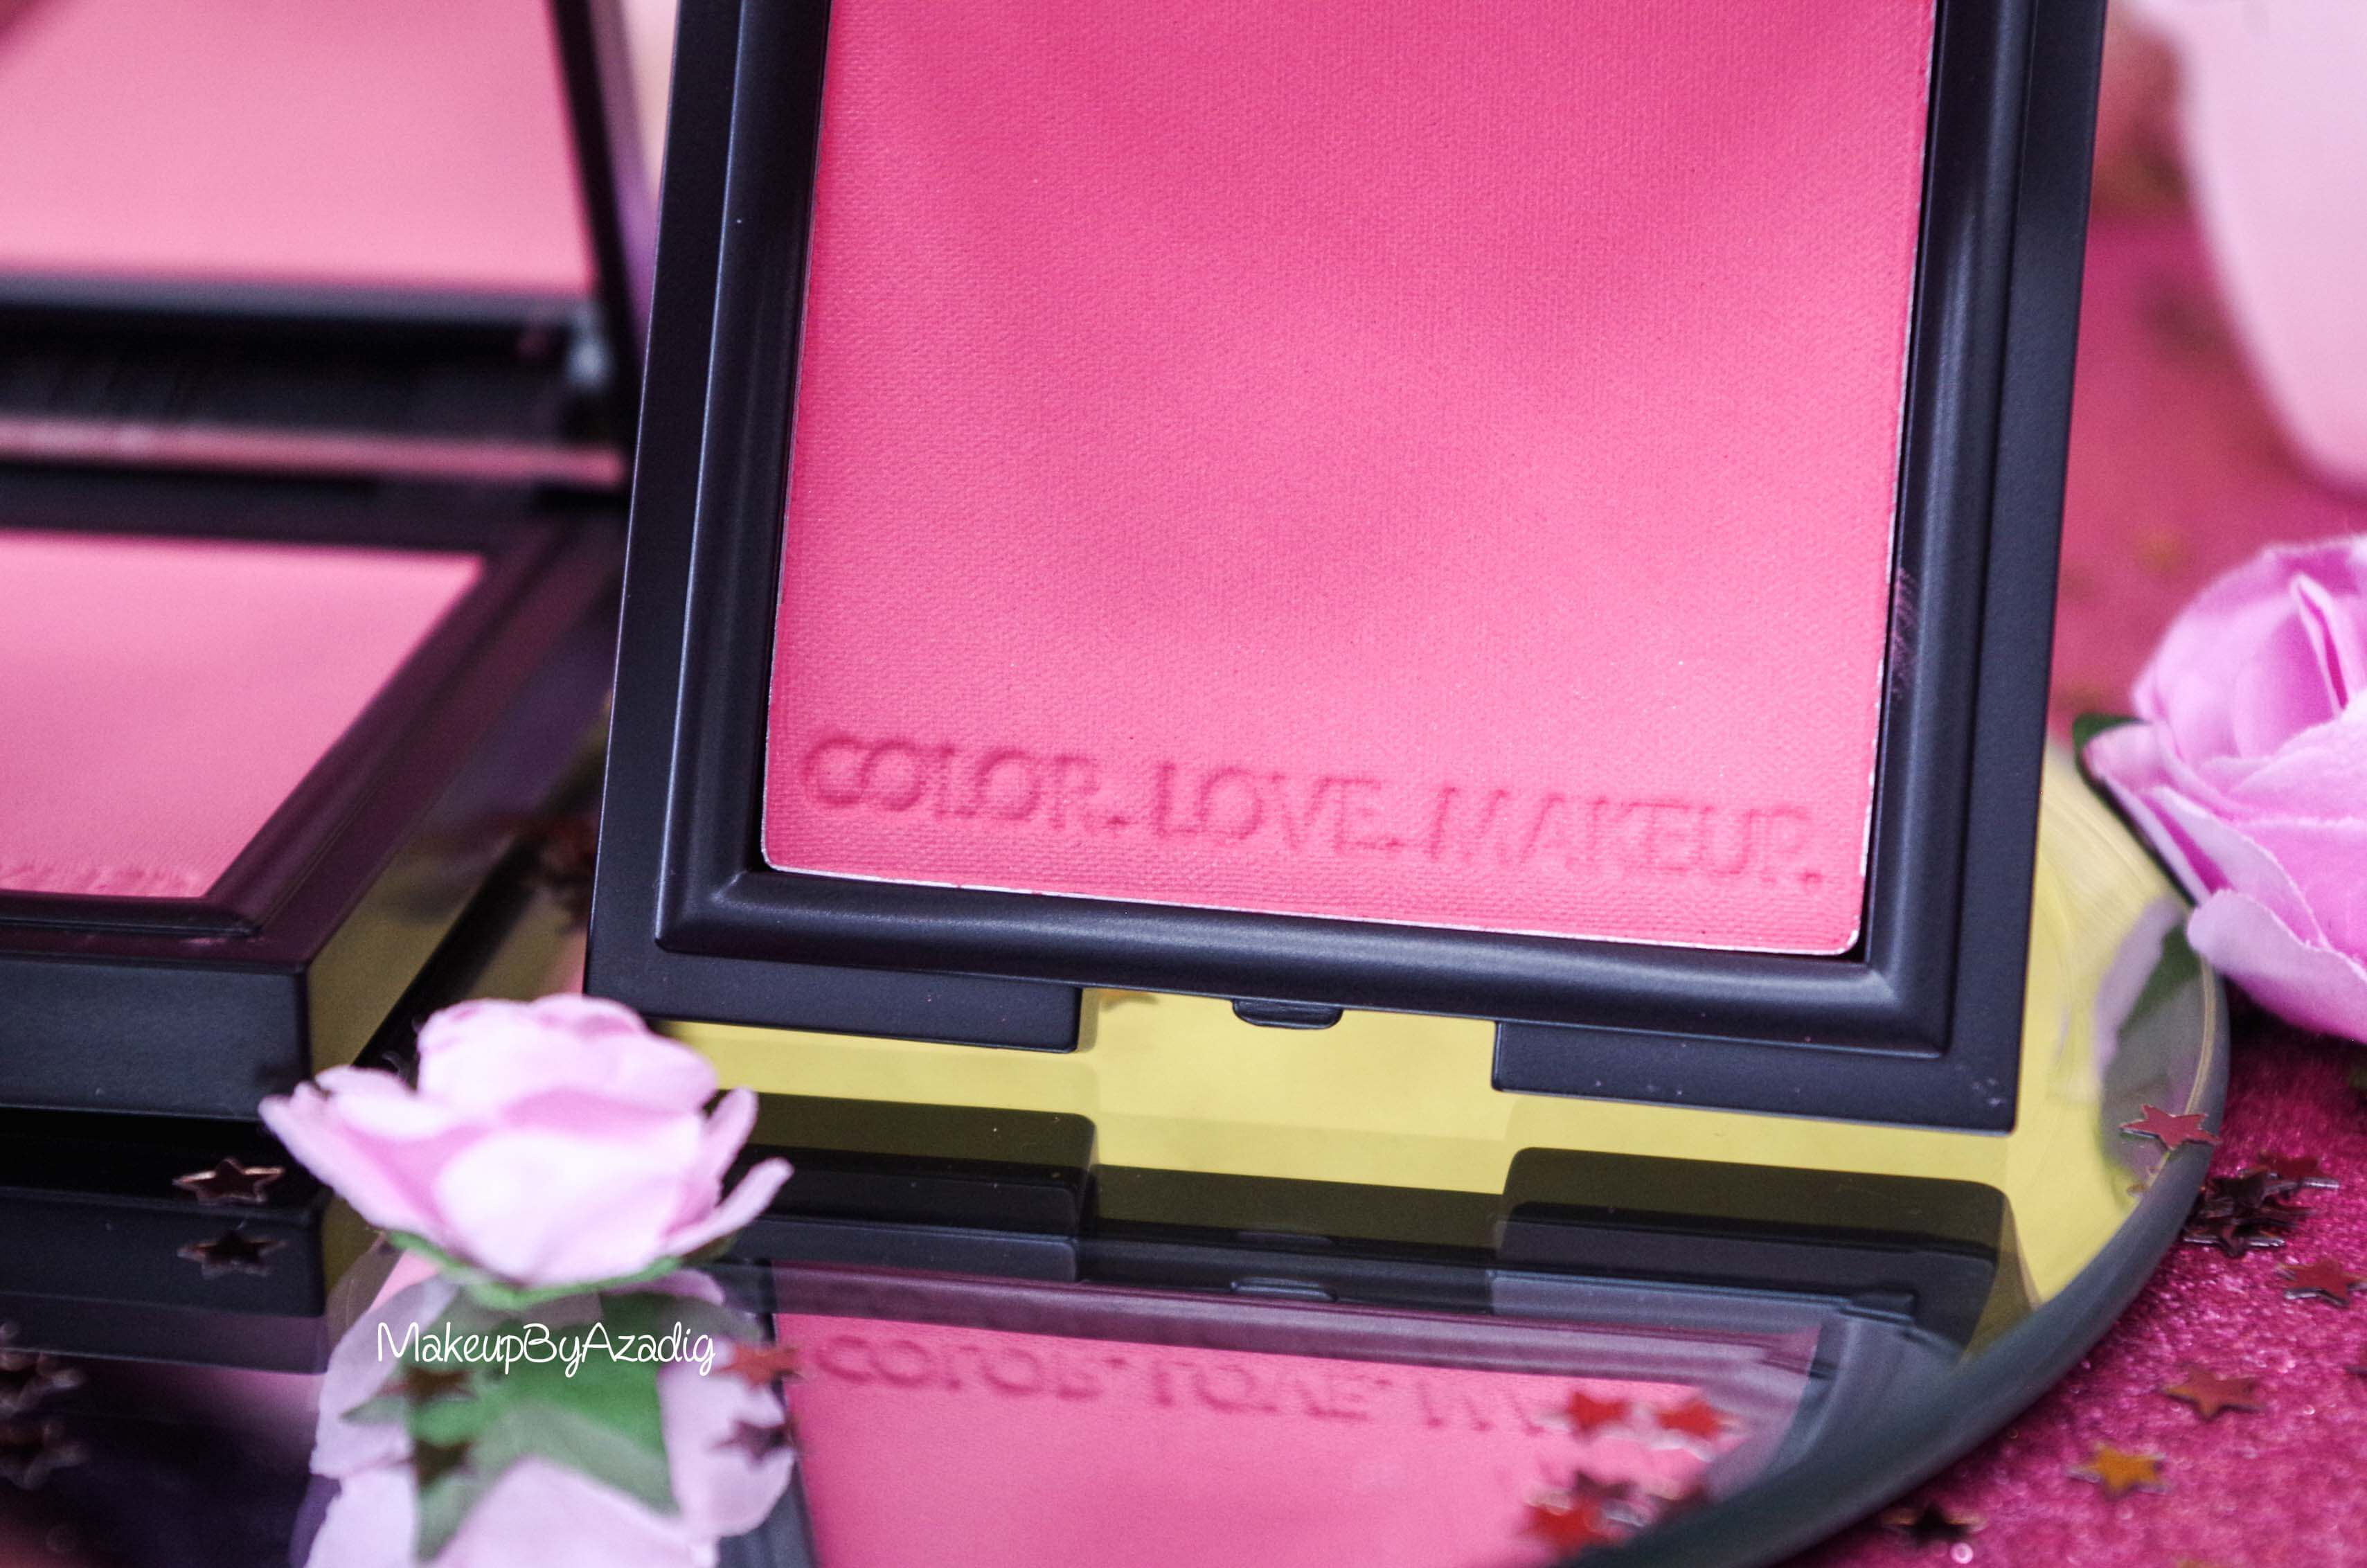 revue-review-luxe-color-blush-zoeva-sephora-france-helovesmemaybe-rush-rush-avis-swatch-makeupbyazadig-paris-corail